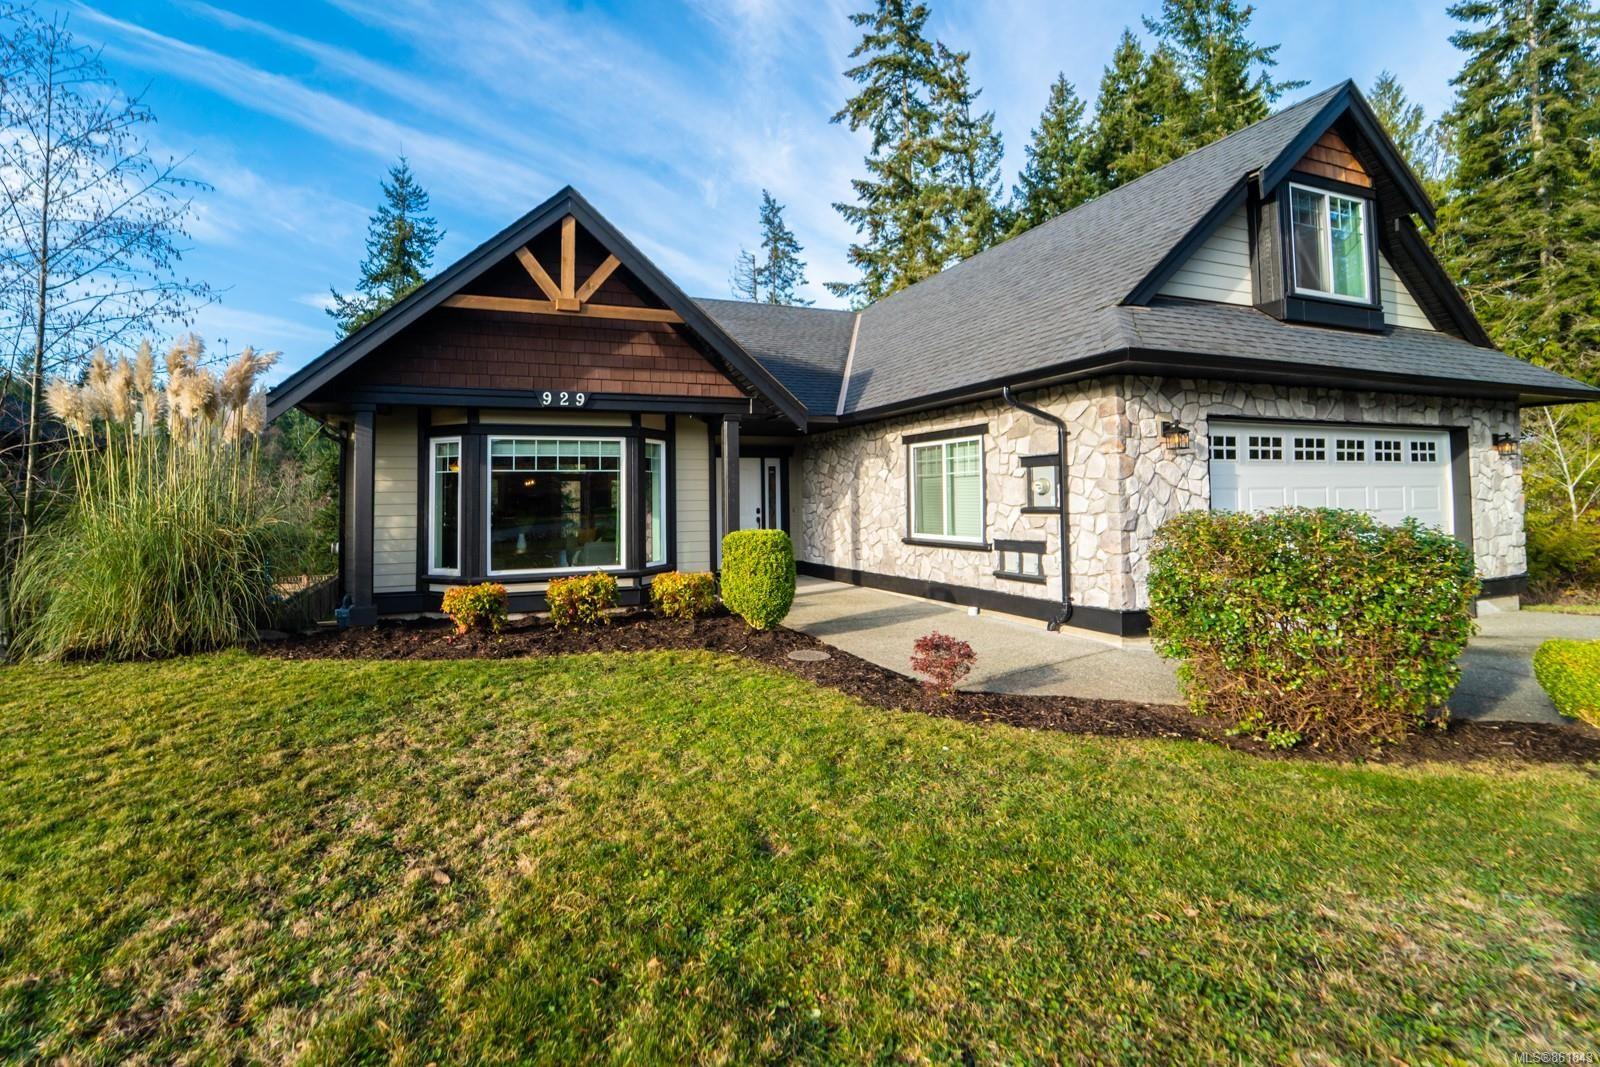 Main Photo: 929 Deloume Rd in : ML Mill Bay House for sale (Malahat & Area)  : MLS®# 861843